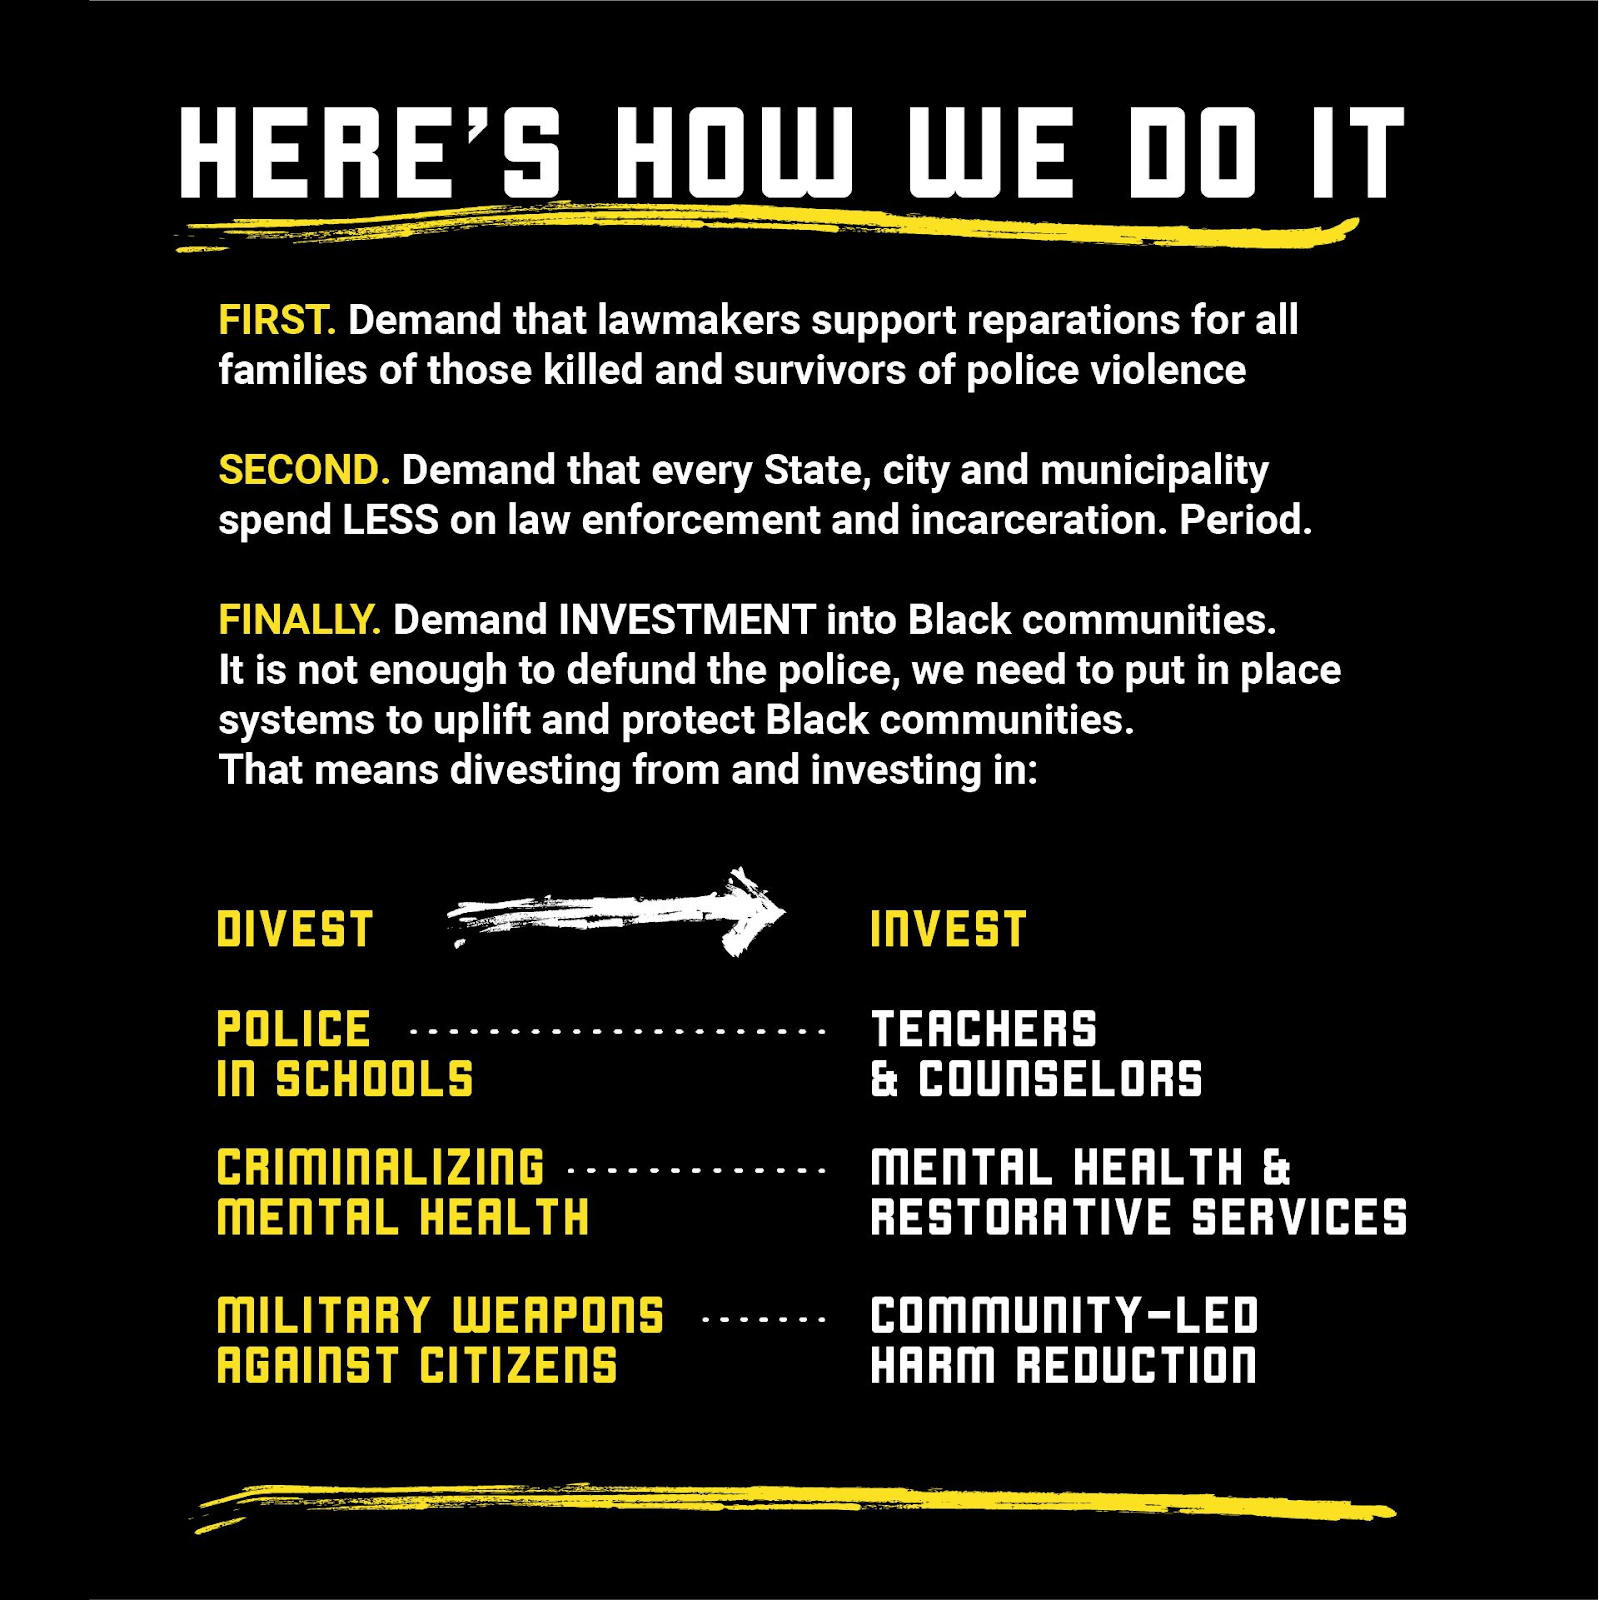 #Here''s how we #DefundThePolice